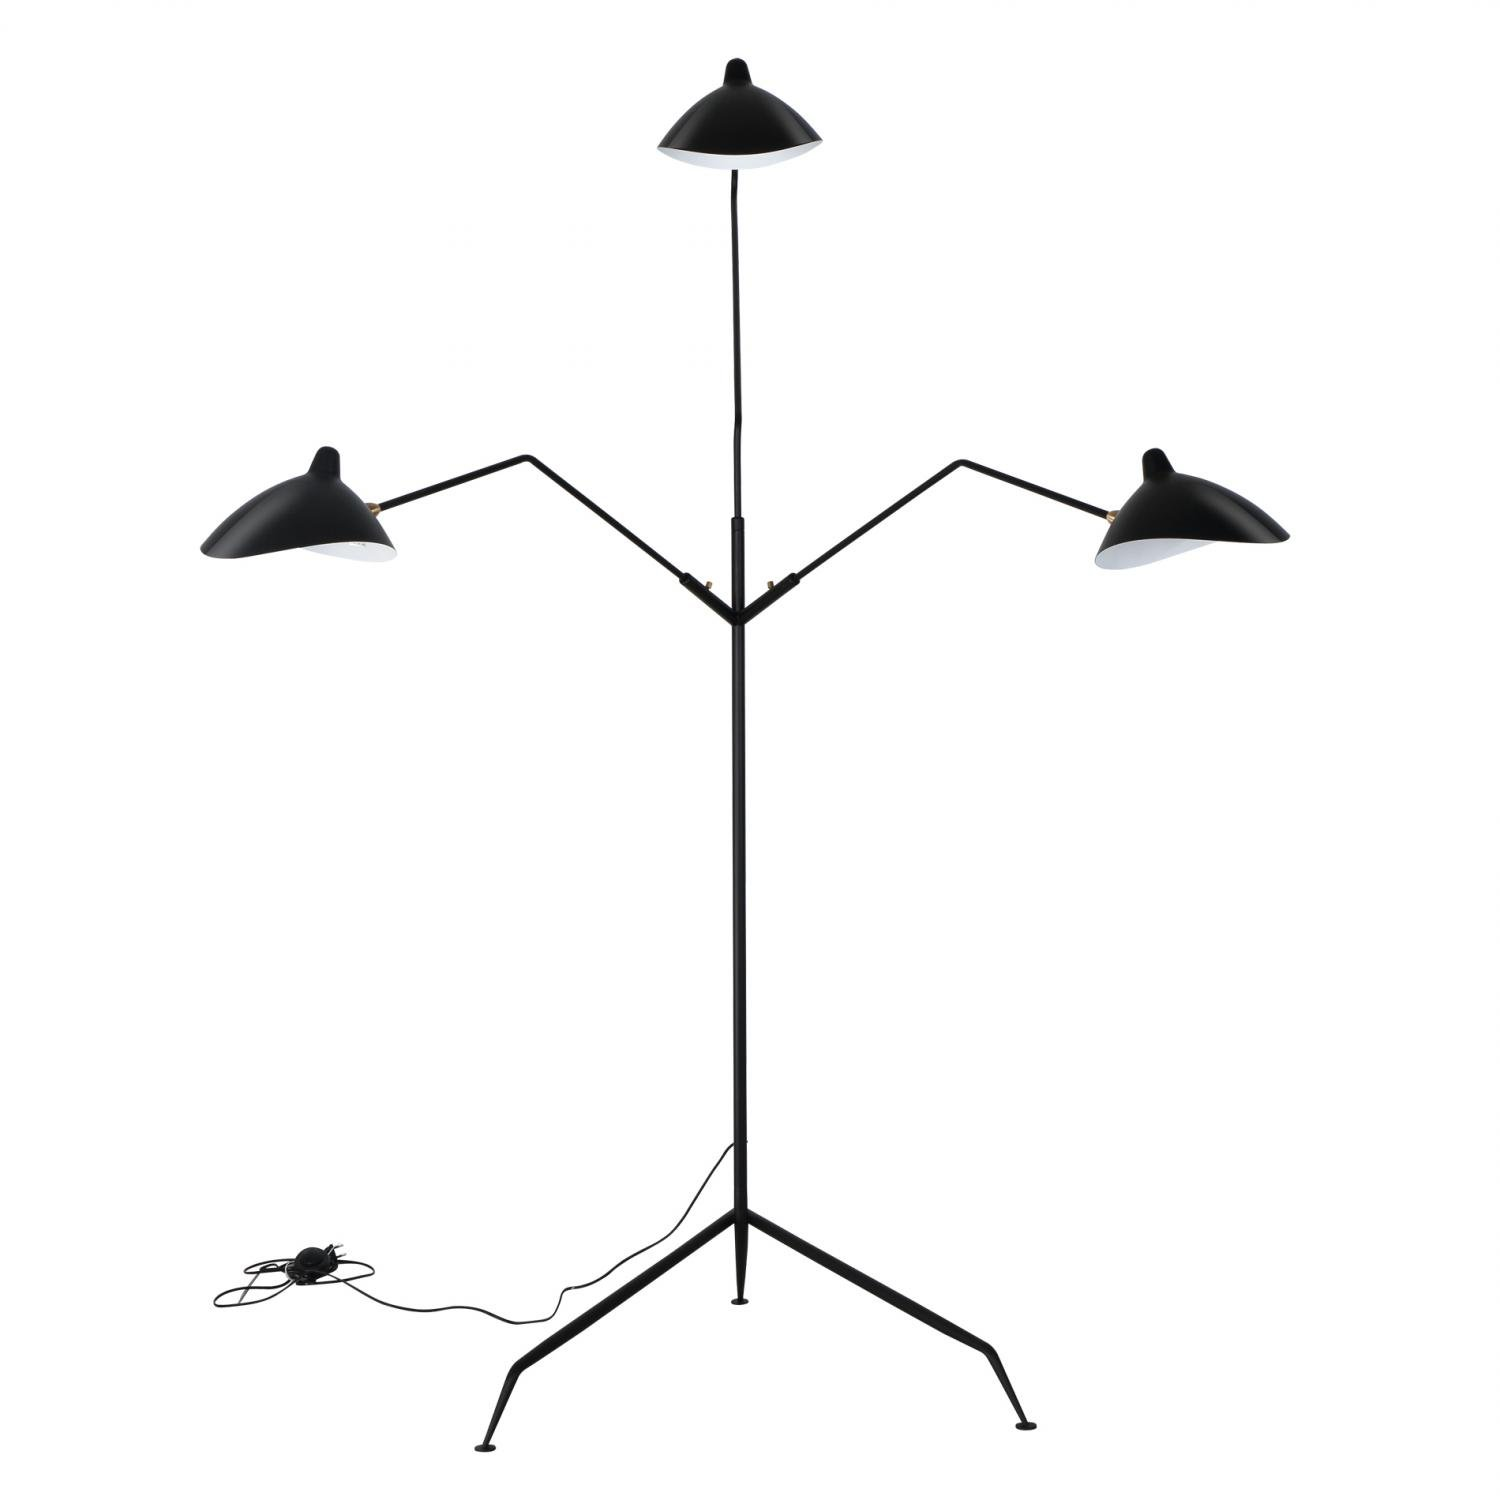 Reproduction of Serge Mouille Three Arm Floor Lamp Standing Lamp